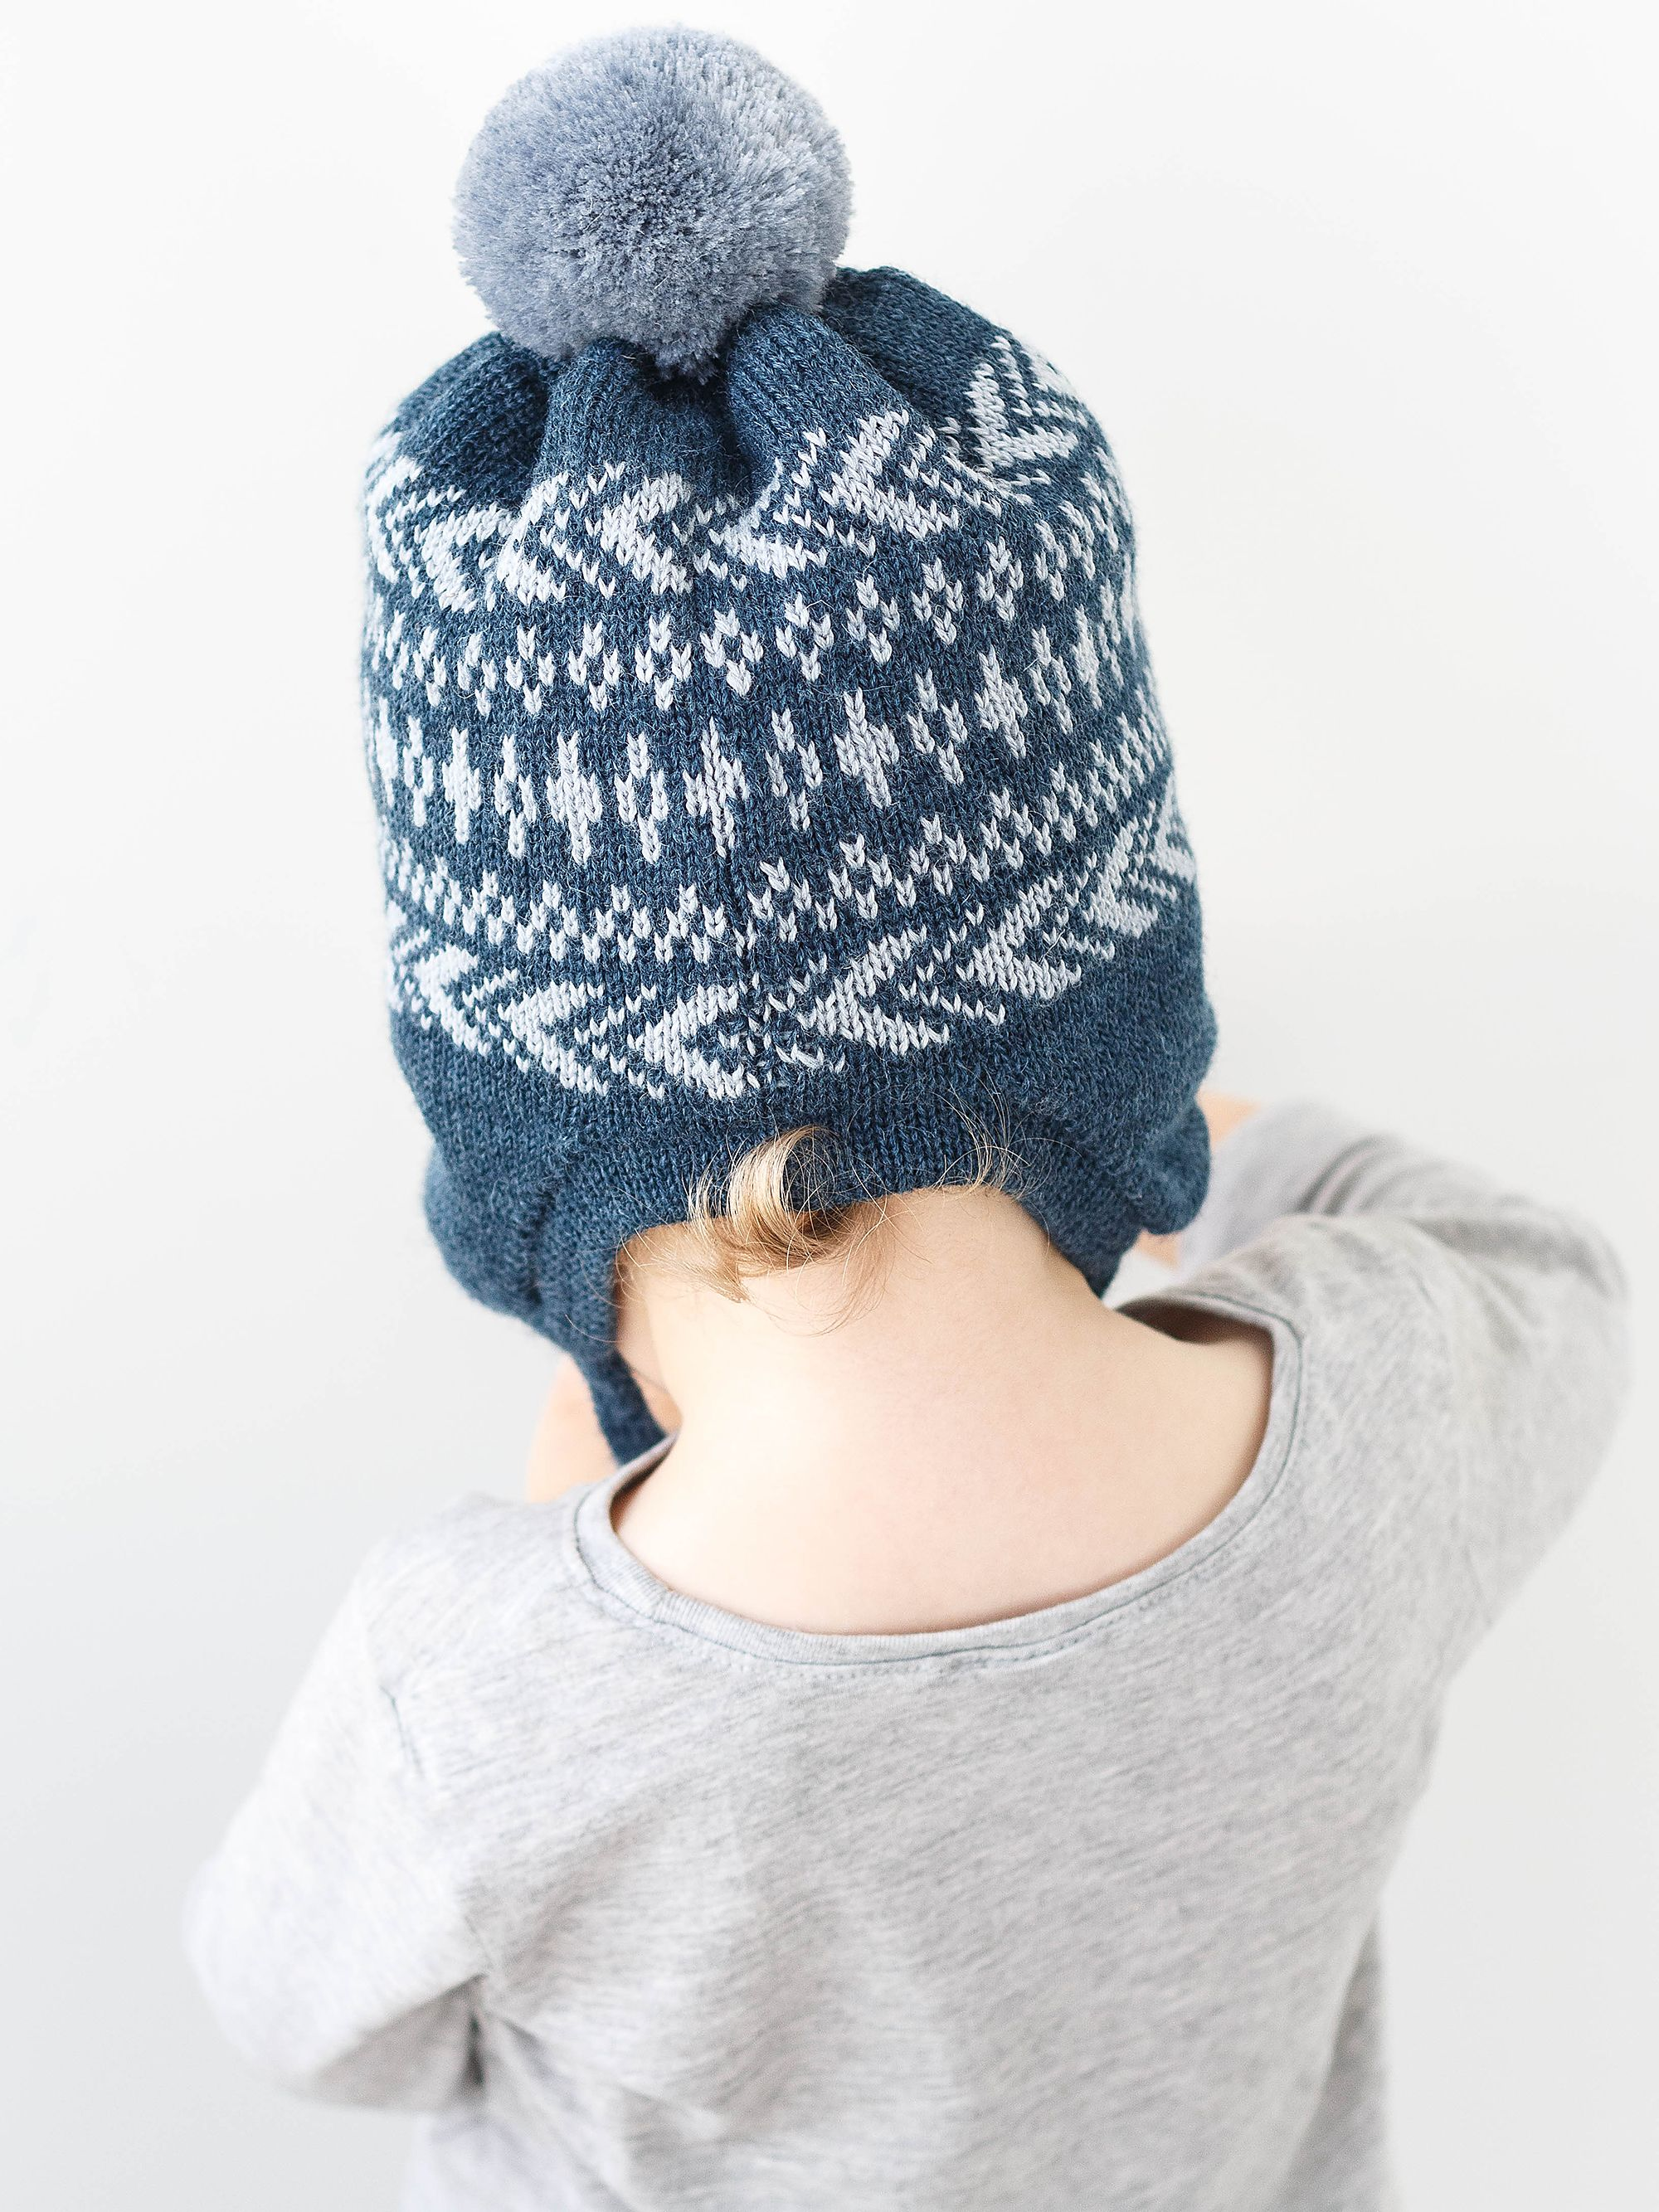 Pin On Lovelly Baby Hats